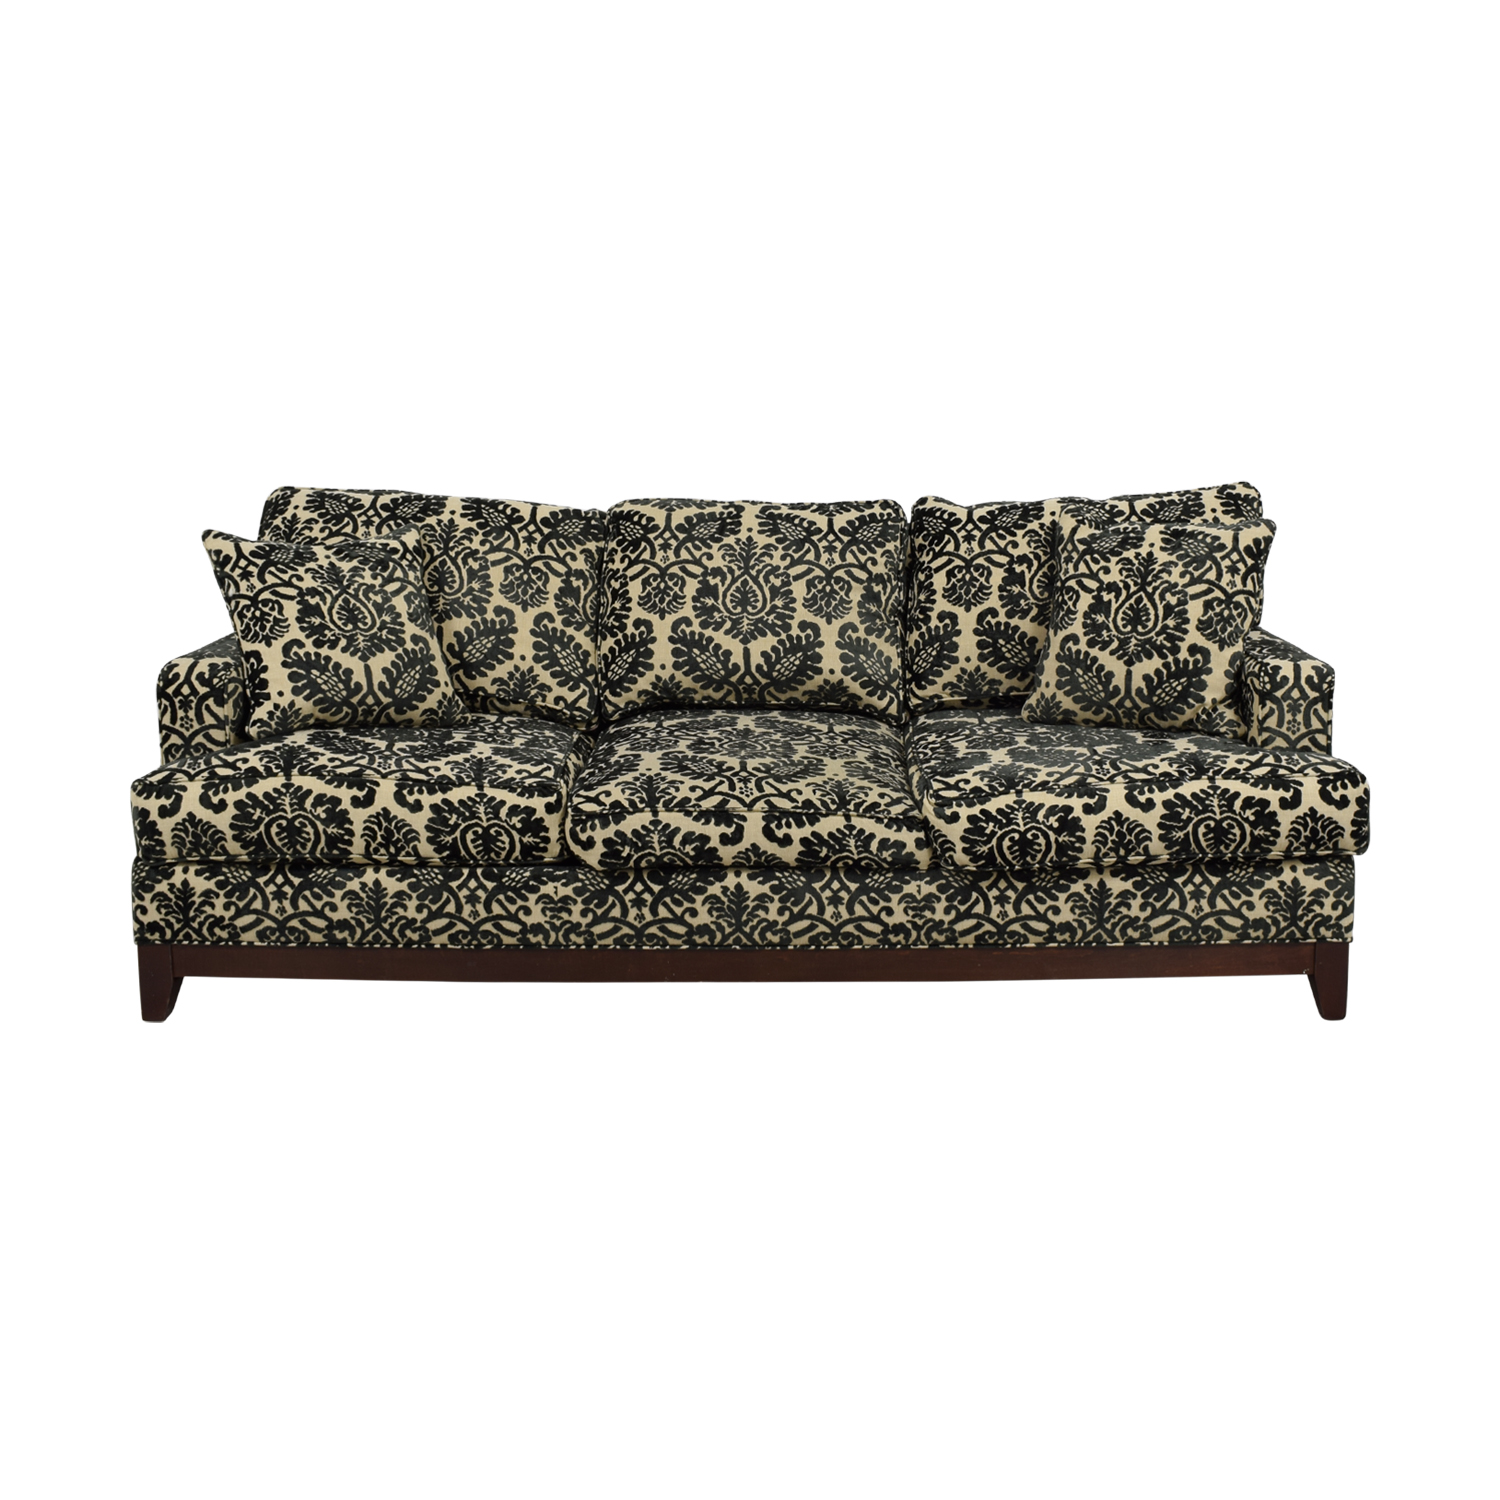 Ethan Allen Arcata Black and Beige Three-Cushion Sofa Ethan Allen